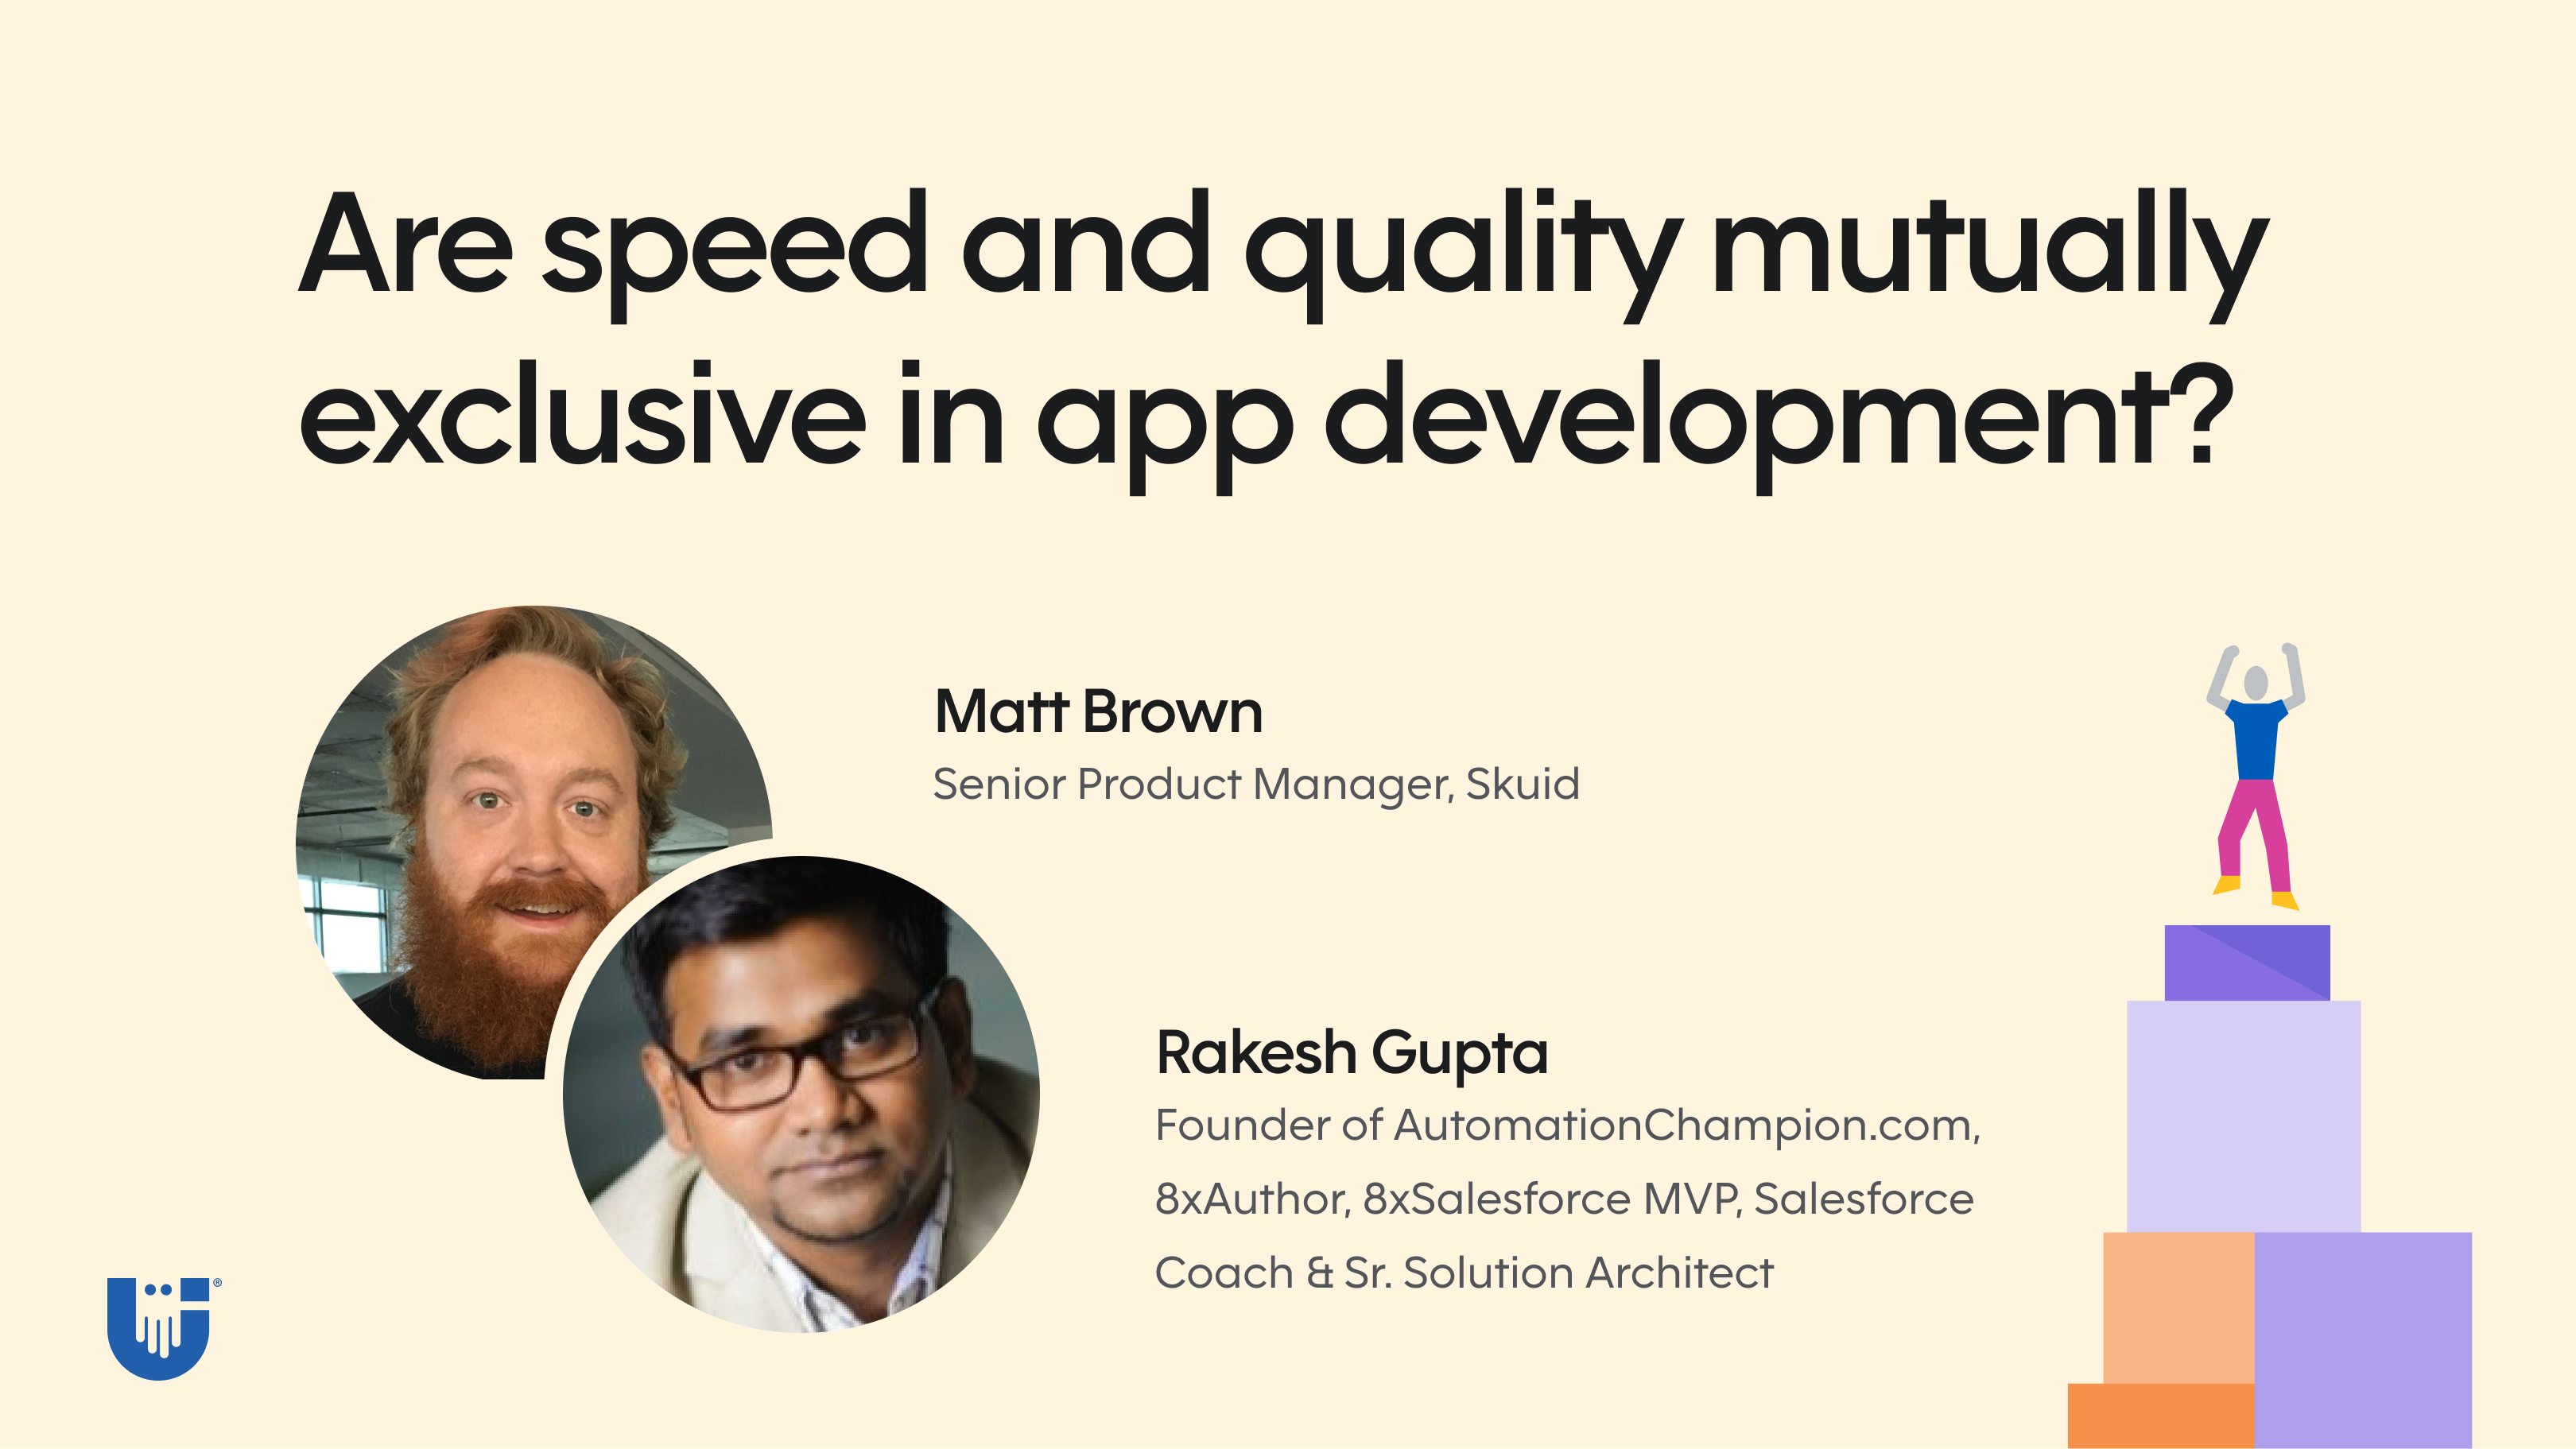 Are speed and quality mutually exclusive in app development?